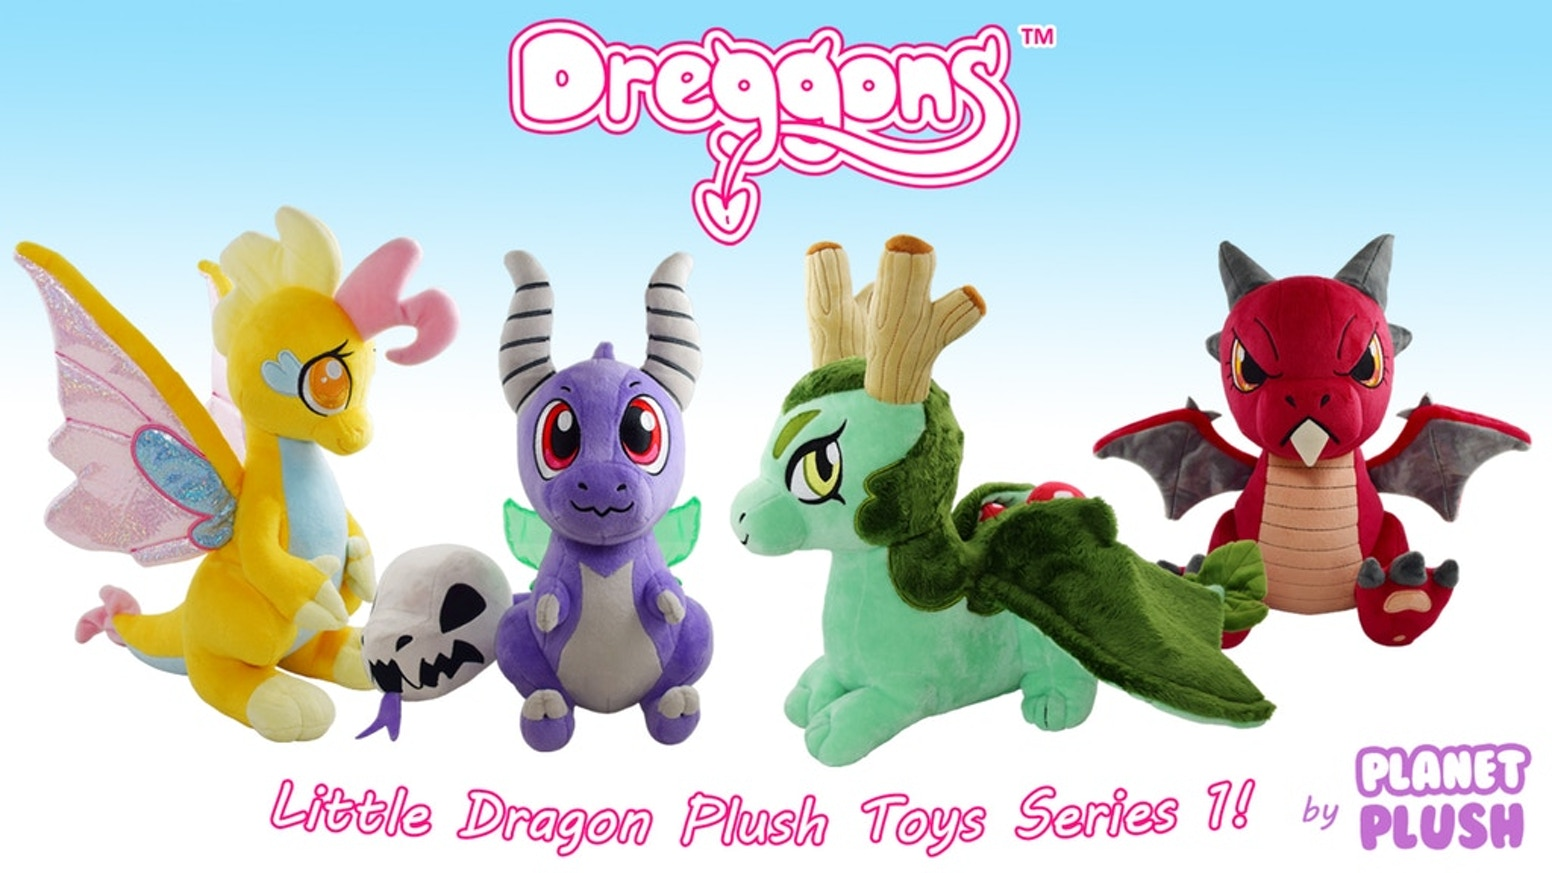 Dreggons are little dragons from a magical world called Draconia! Come meet them in this designer plush series!